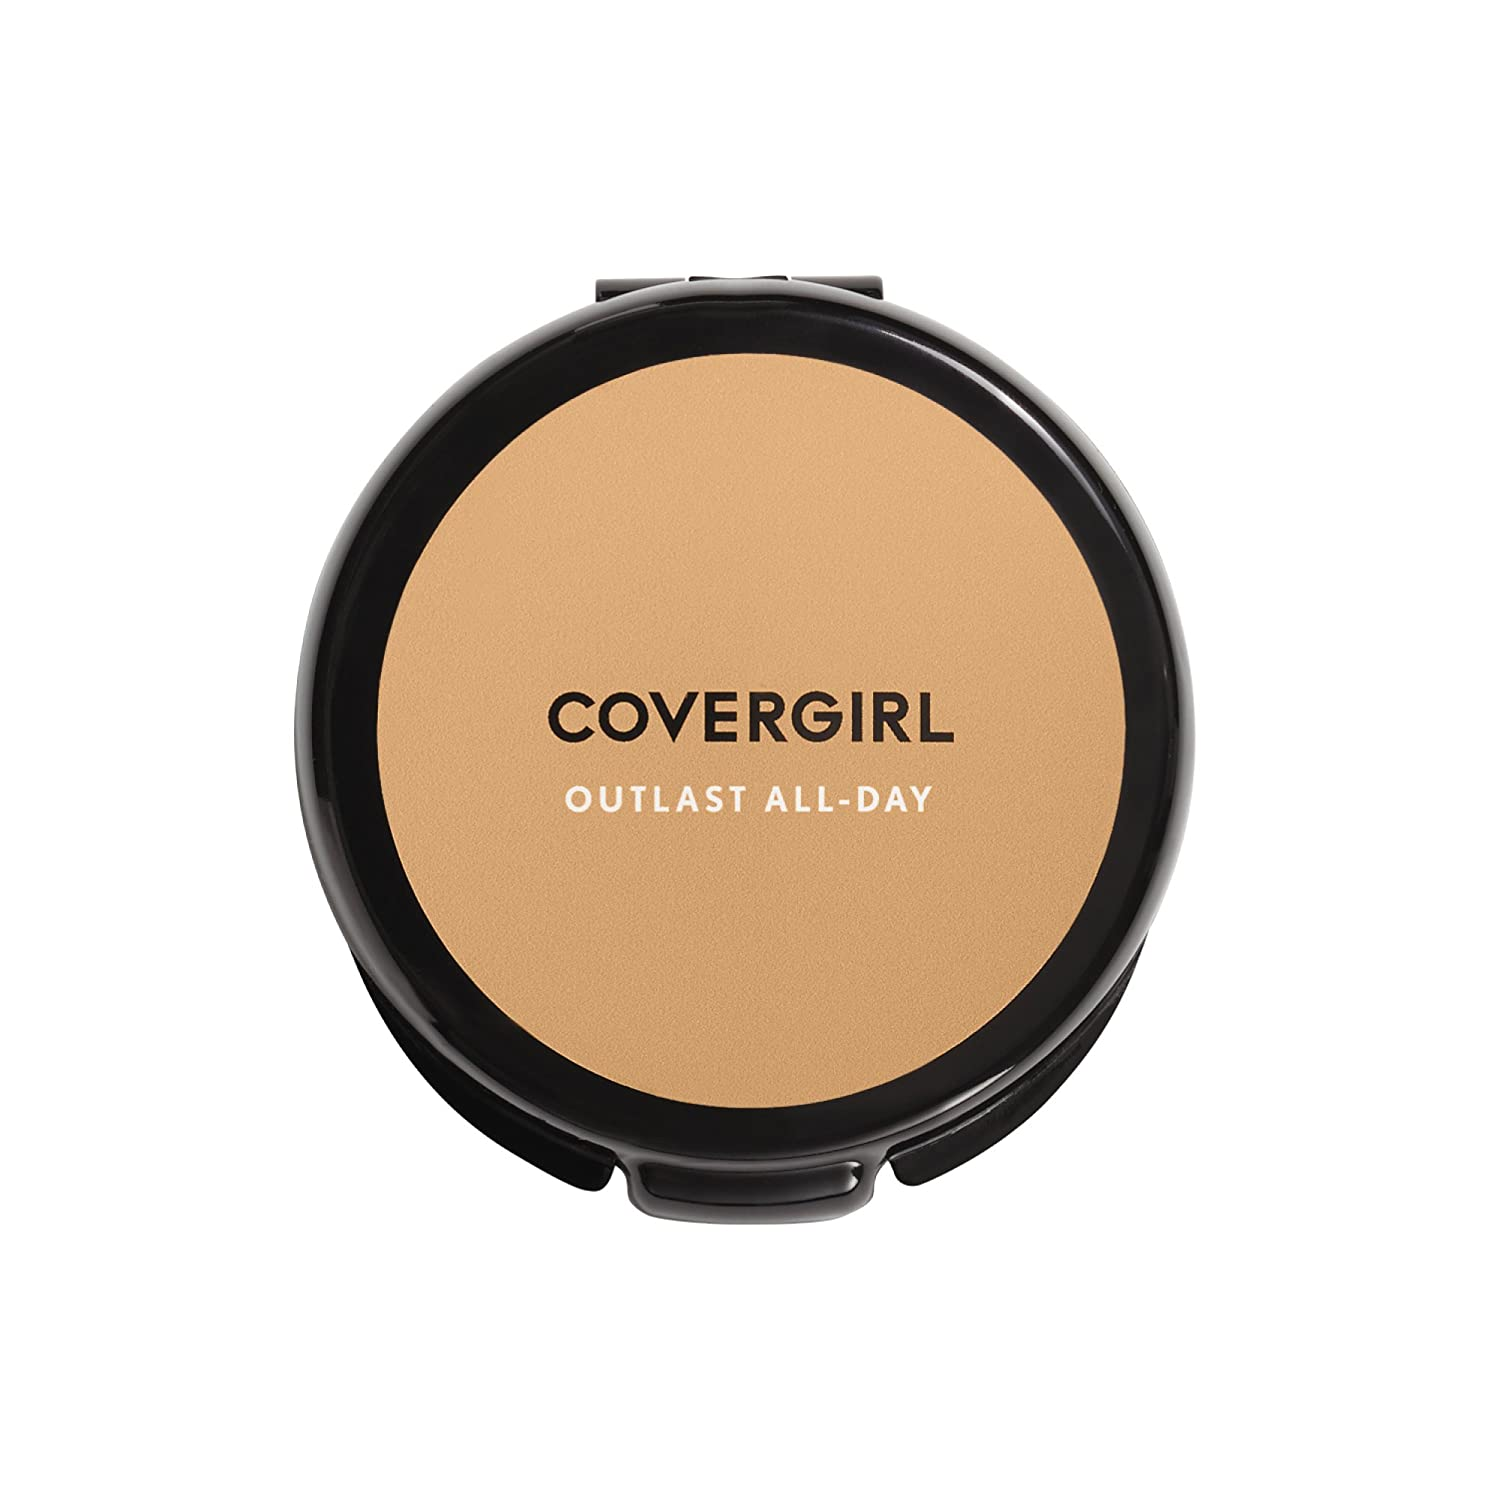 COVERGIRL - Outlast All-Day Matte Finishing Powder - Packaging May Vary Coty